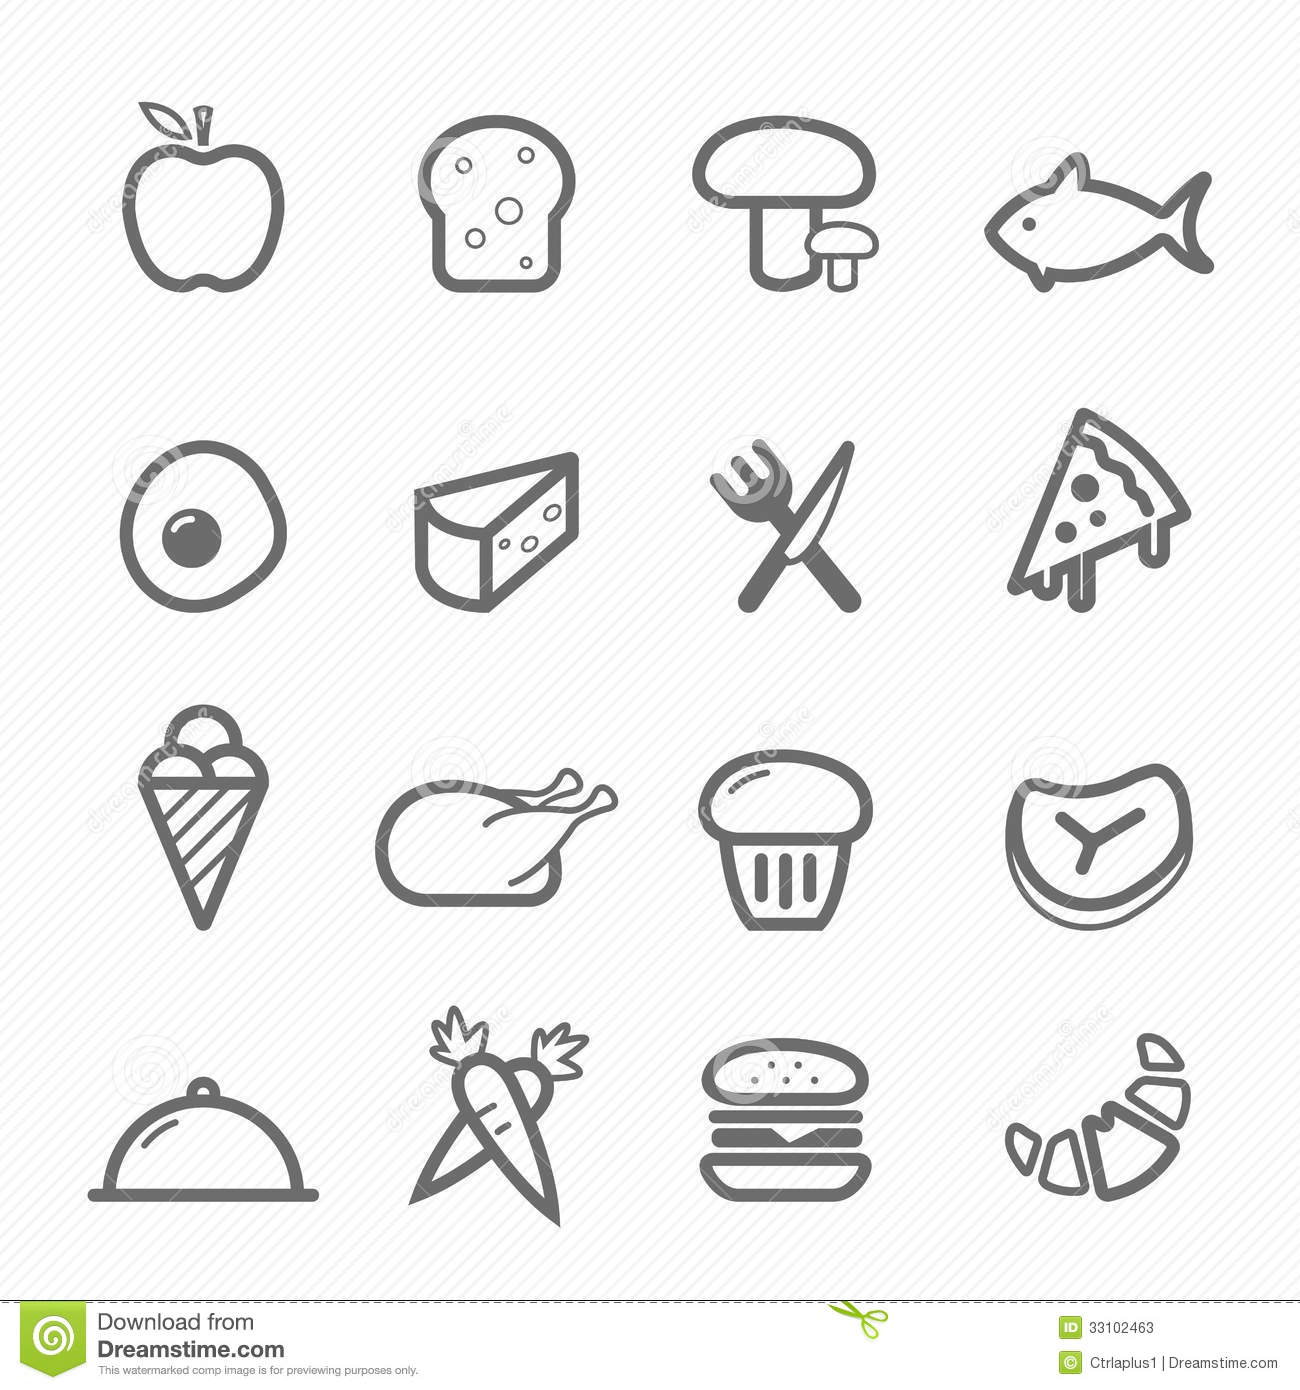 Food symbol line icon on white background vector illustration.